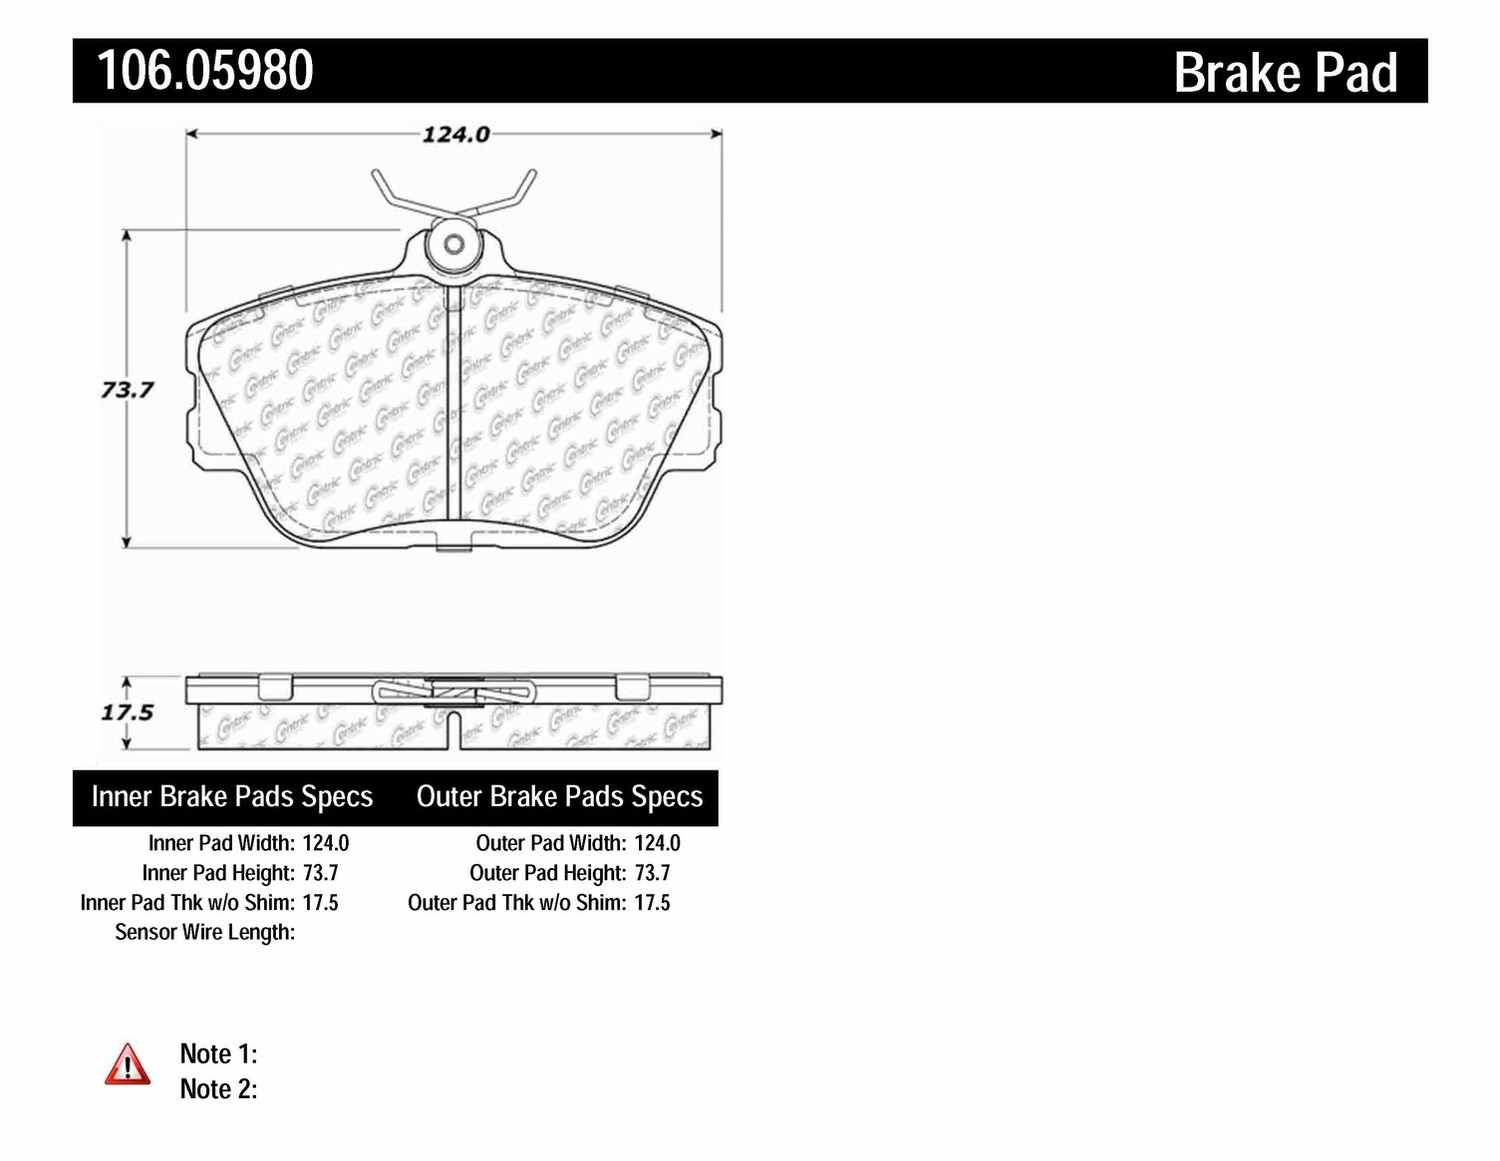 1929 ford model a brakes wiring diagram database tags 1929 ford model a tudor 1932 ford model a 1929 ford model a rat rod 1920 ford model a 1929 ford model a parts 1925 ford model a 1929 model a ford